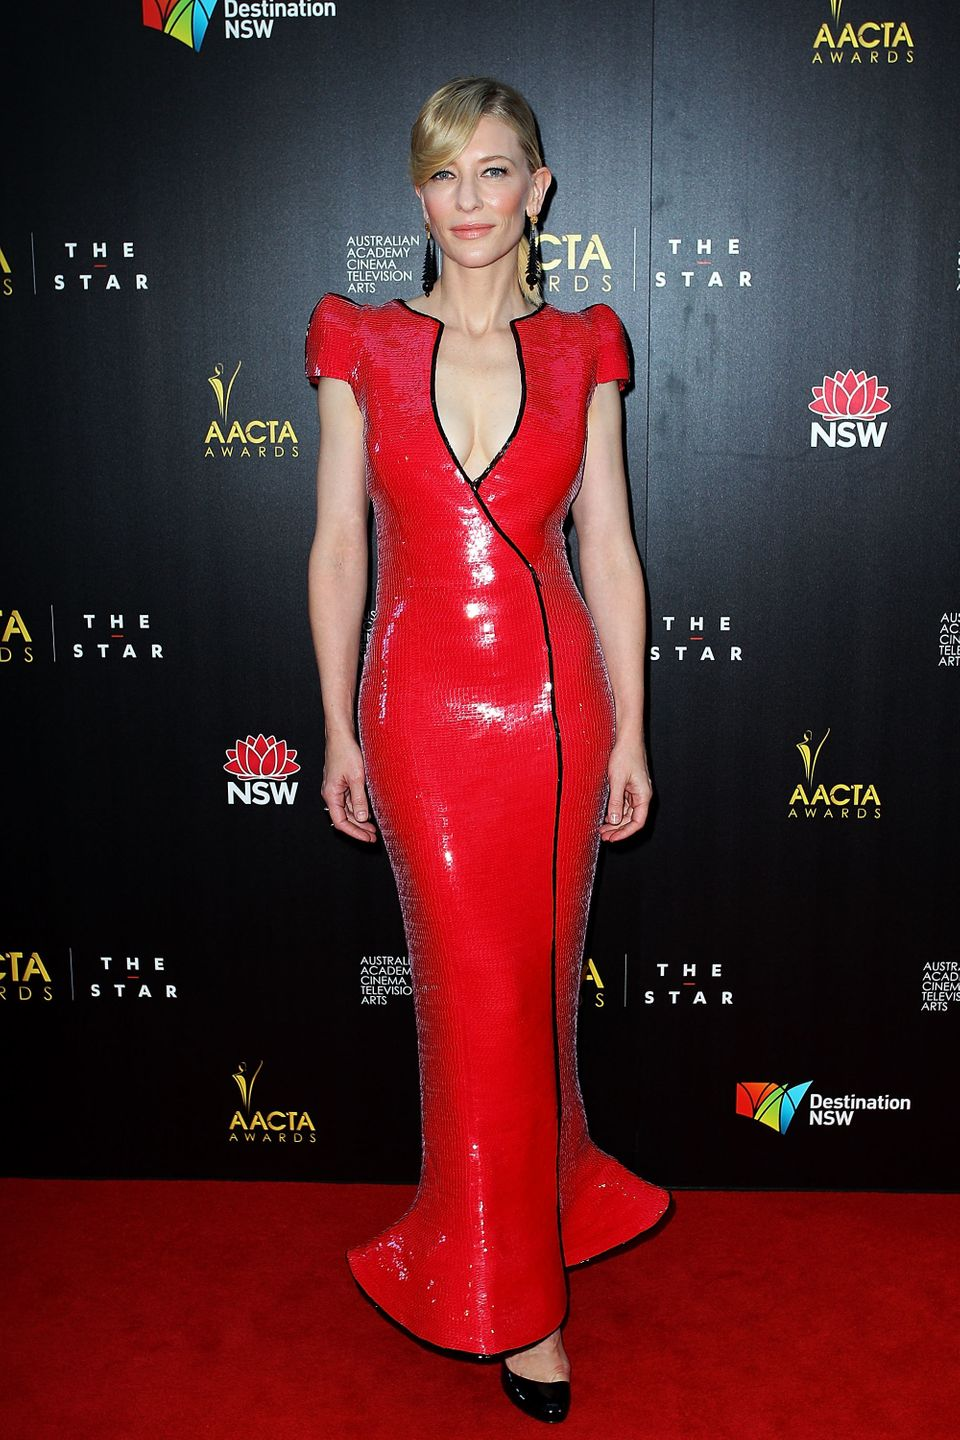 22_thanks_to_the_deep_plunge_and_bold_hue_cate_s_red_sequined_armani_prive_gown_was_a_daring_choice_but_one_that_truly_paid_off_at_the_2013_aacta_awards_in_january_in_sydney2.jpeg